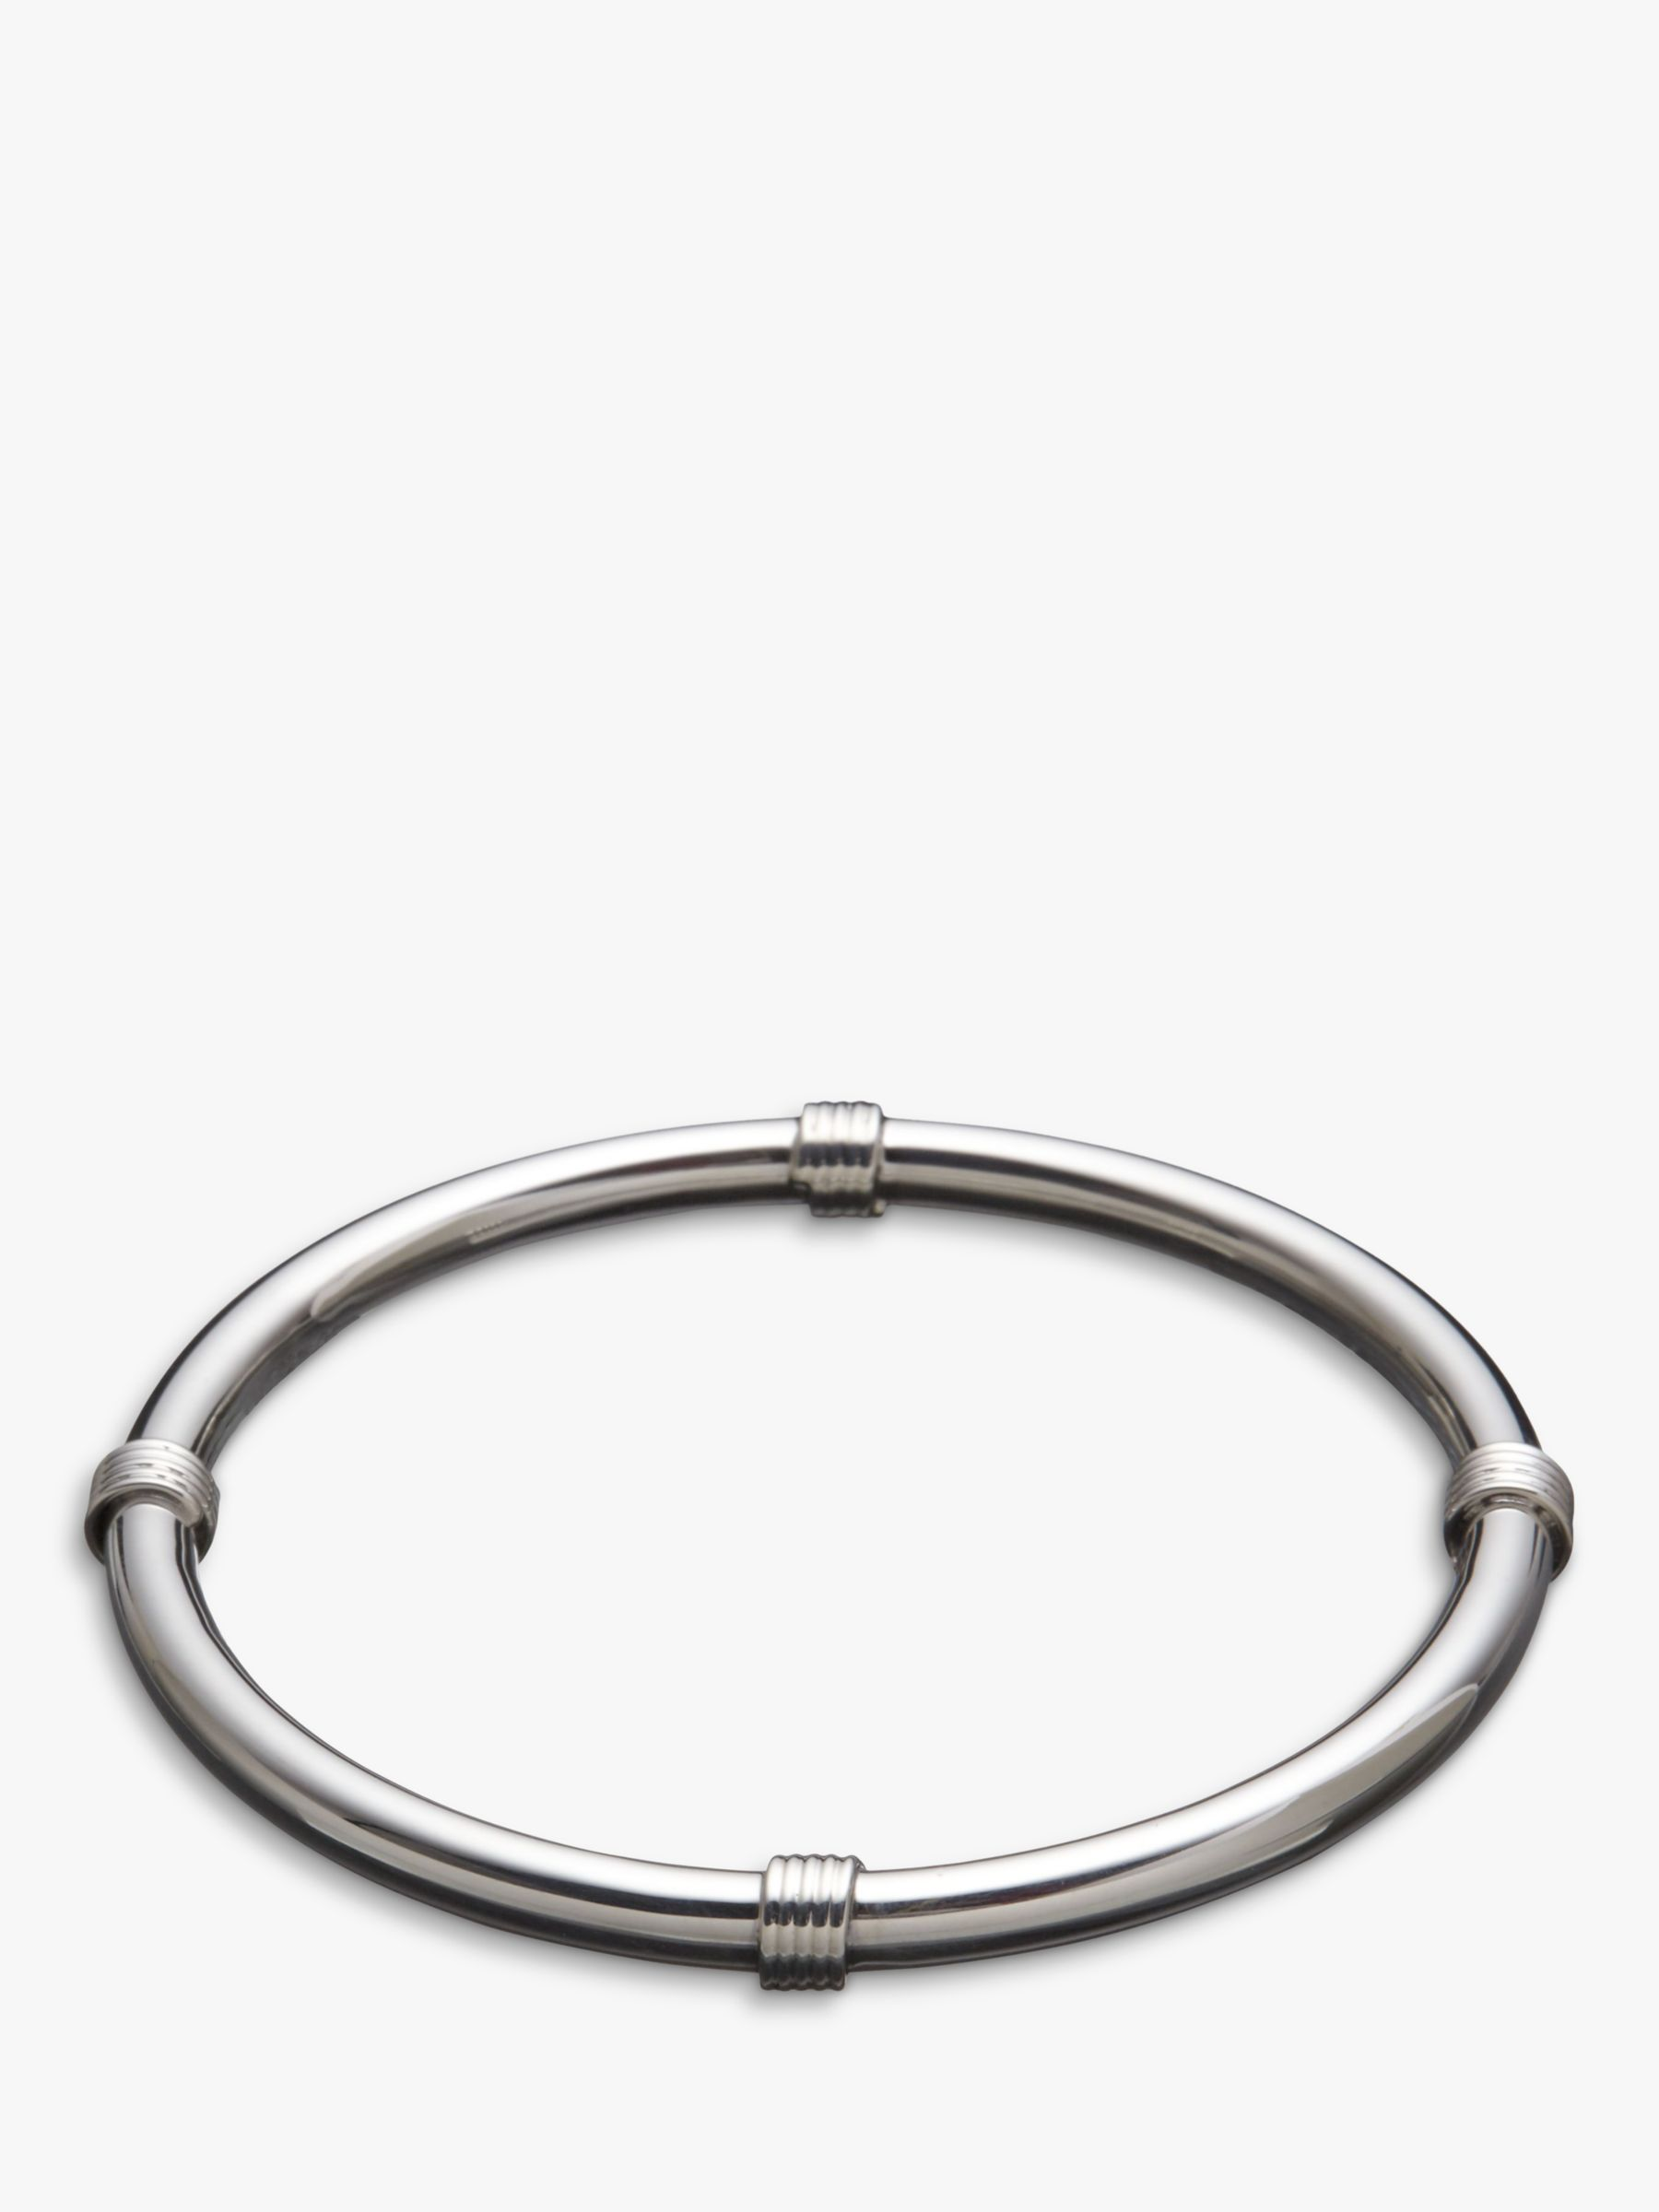 Andea Andea Sterling Silver Coil Twist Polished Bangle, Silver